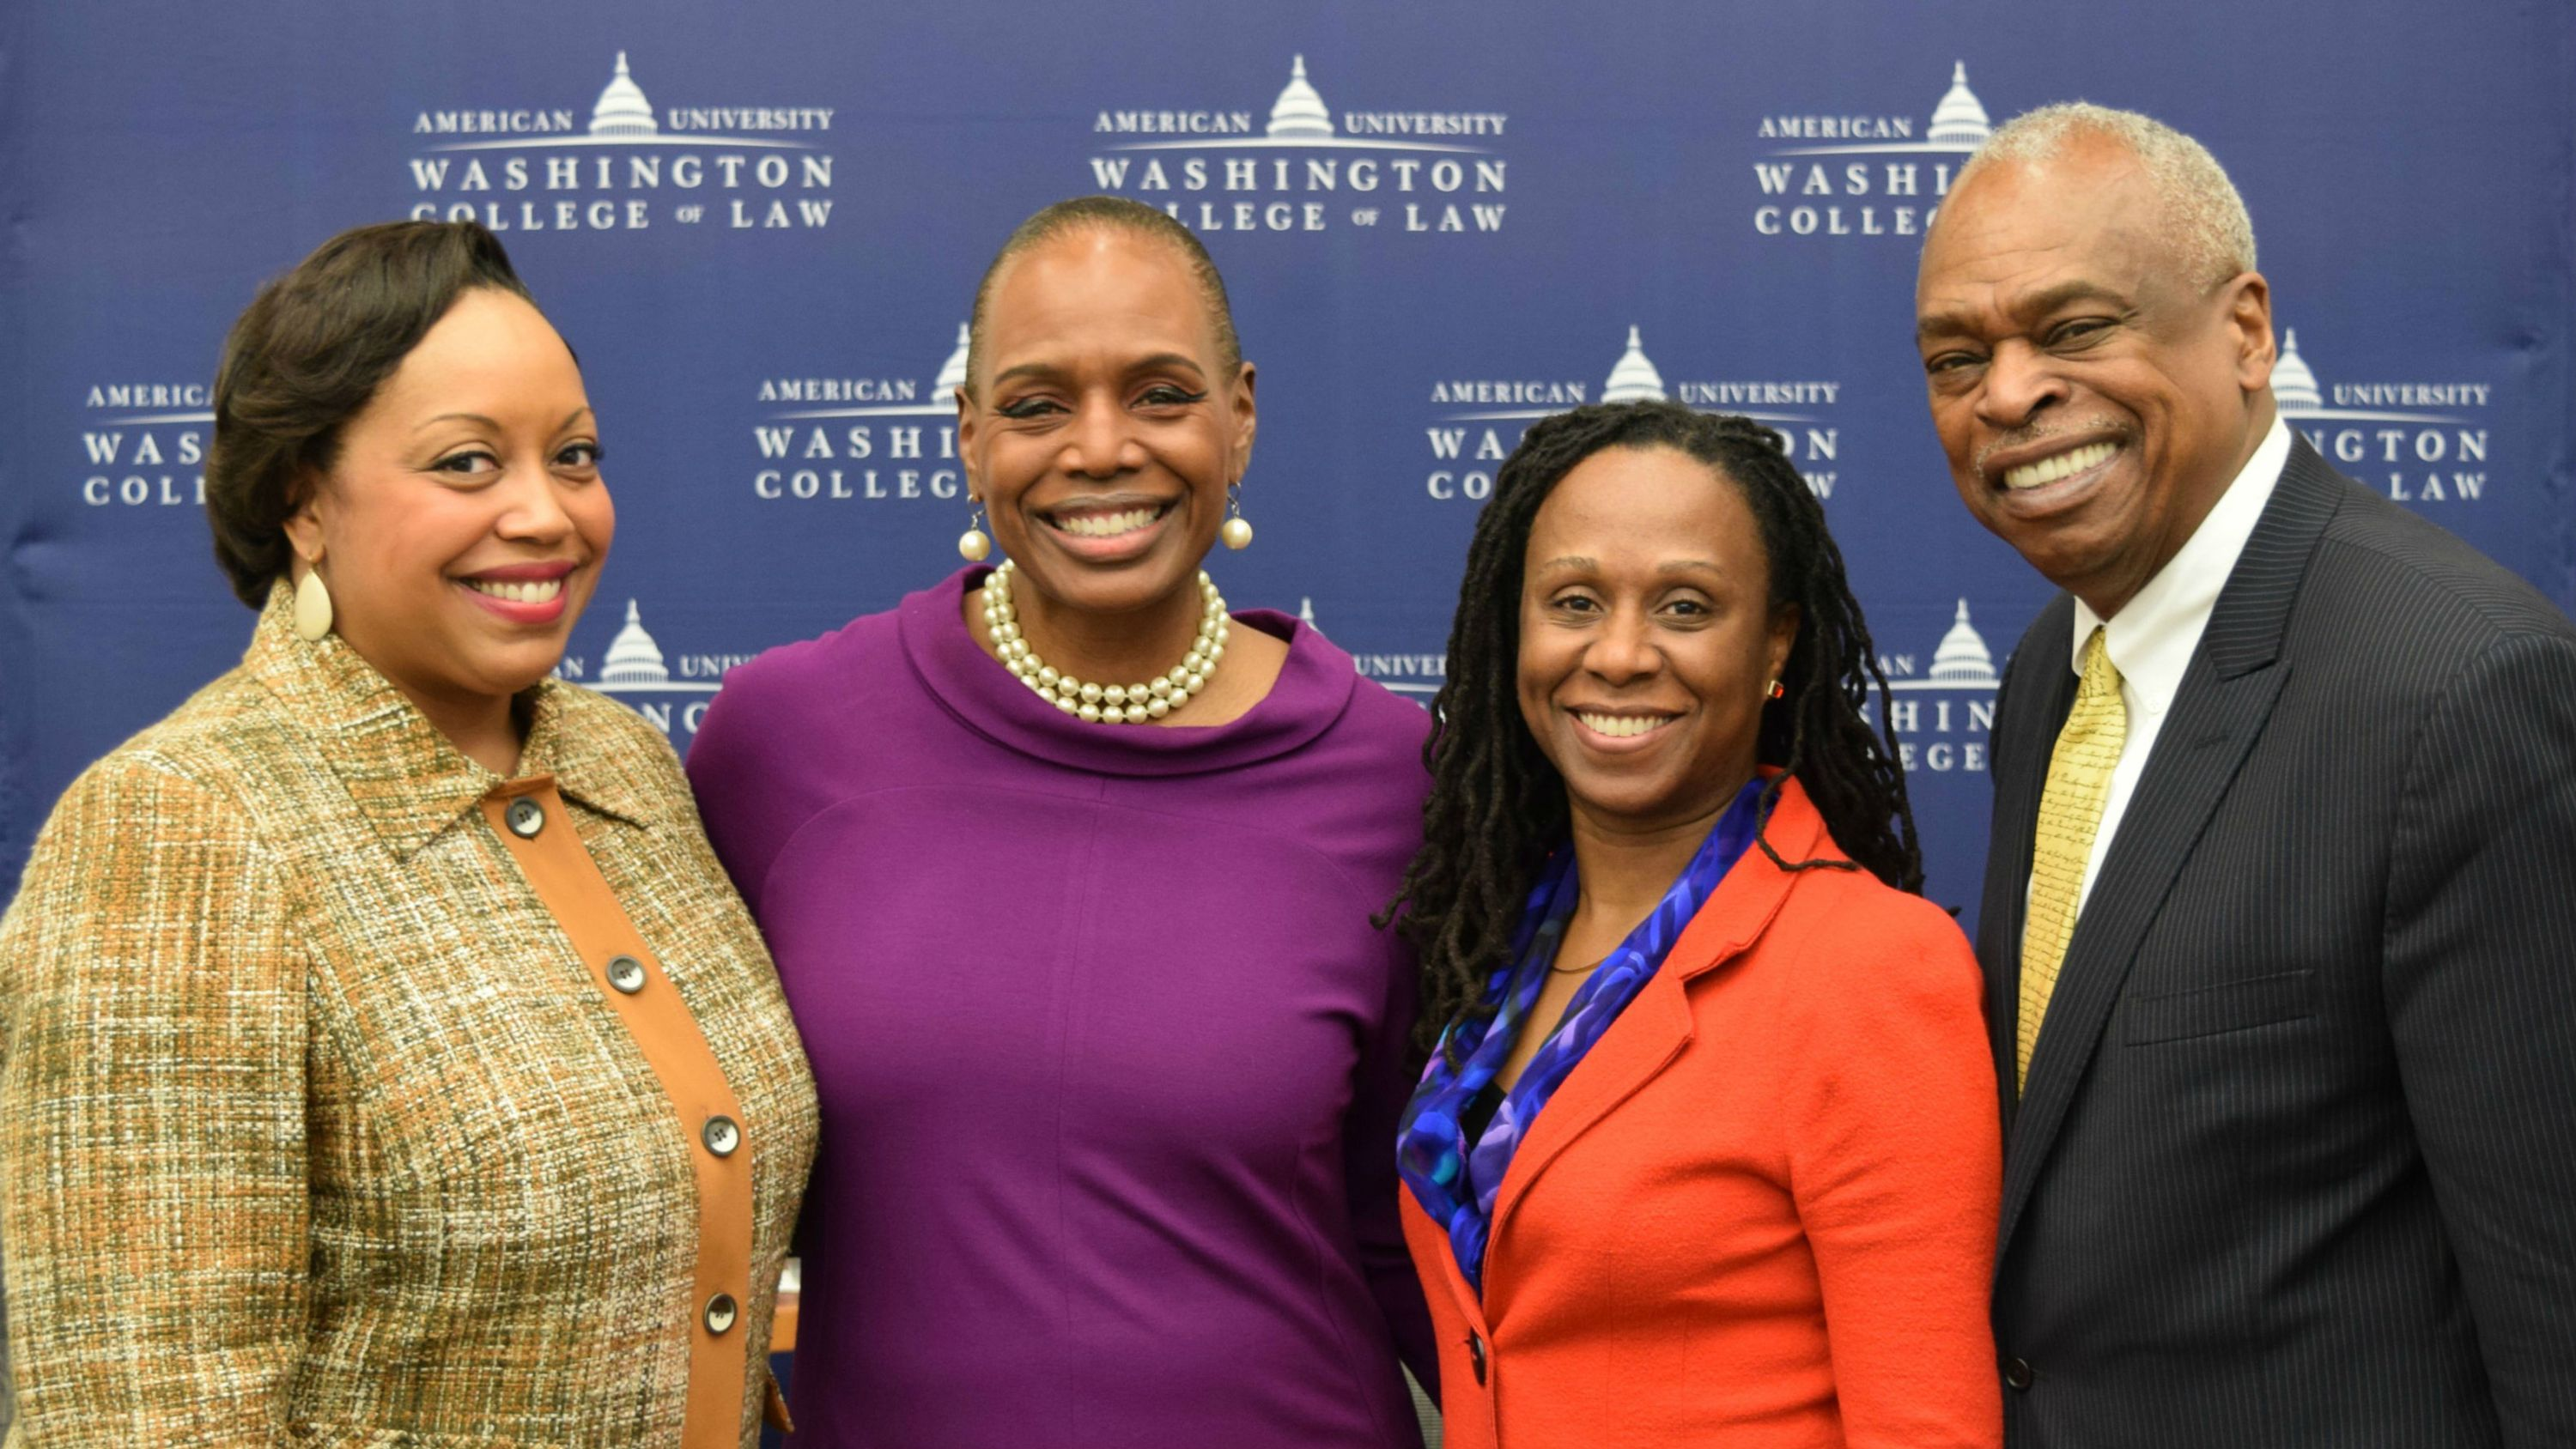 Left to Right: Kendra Brown, Nicole Austin-Hillery, Dean Camille Nelson, and Wade Henderson